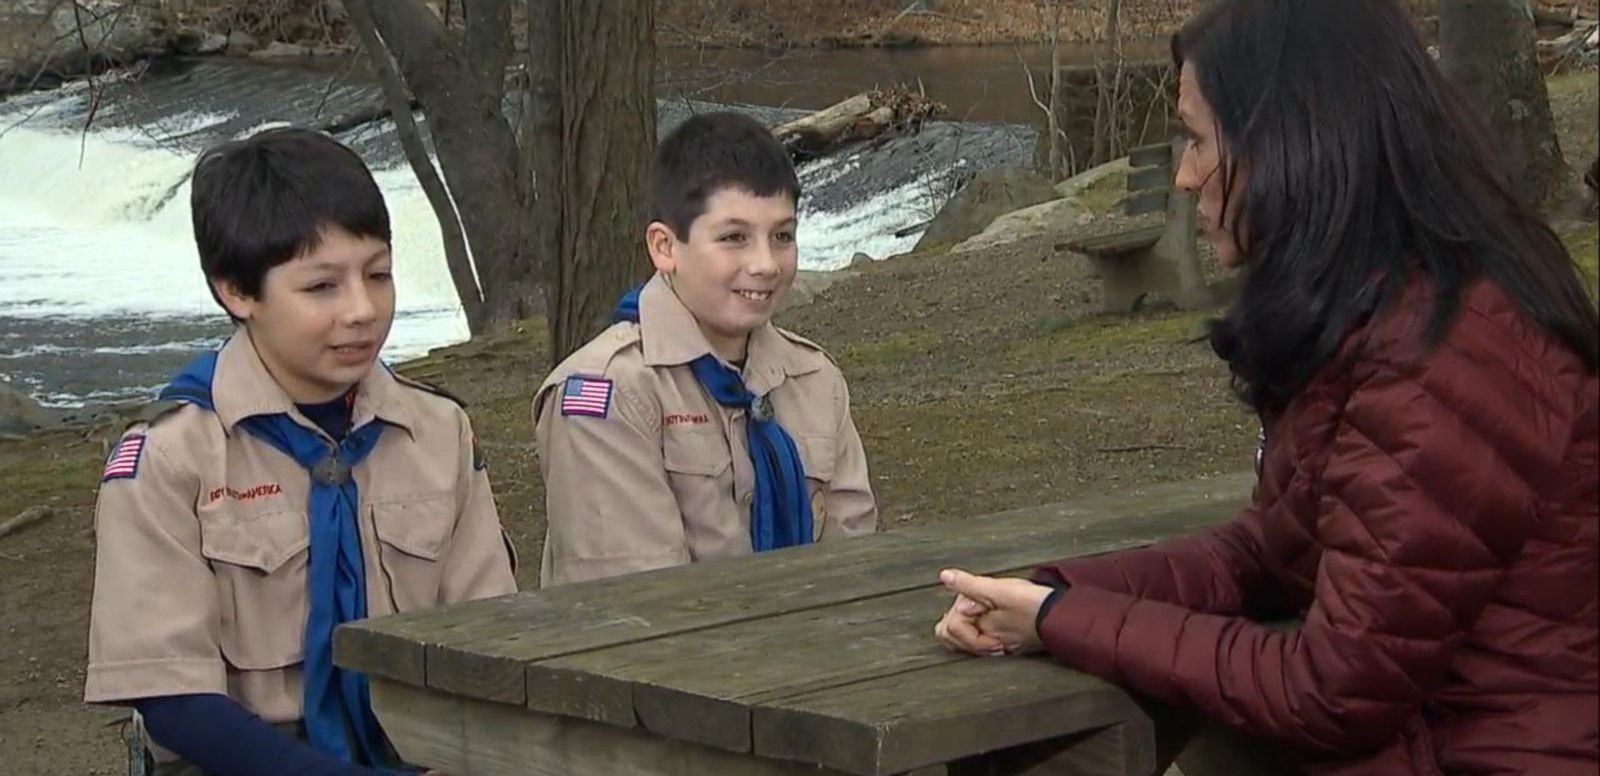 VIDEO: Two Boy Scout Brothers Save Their Scout Leader From a Bear Attack